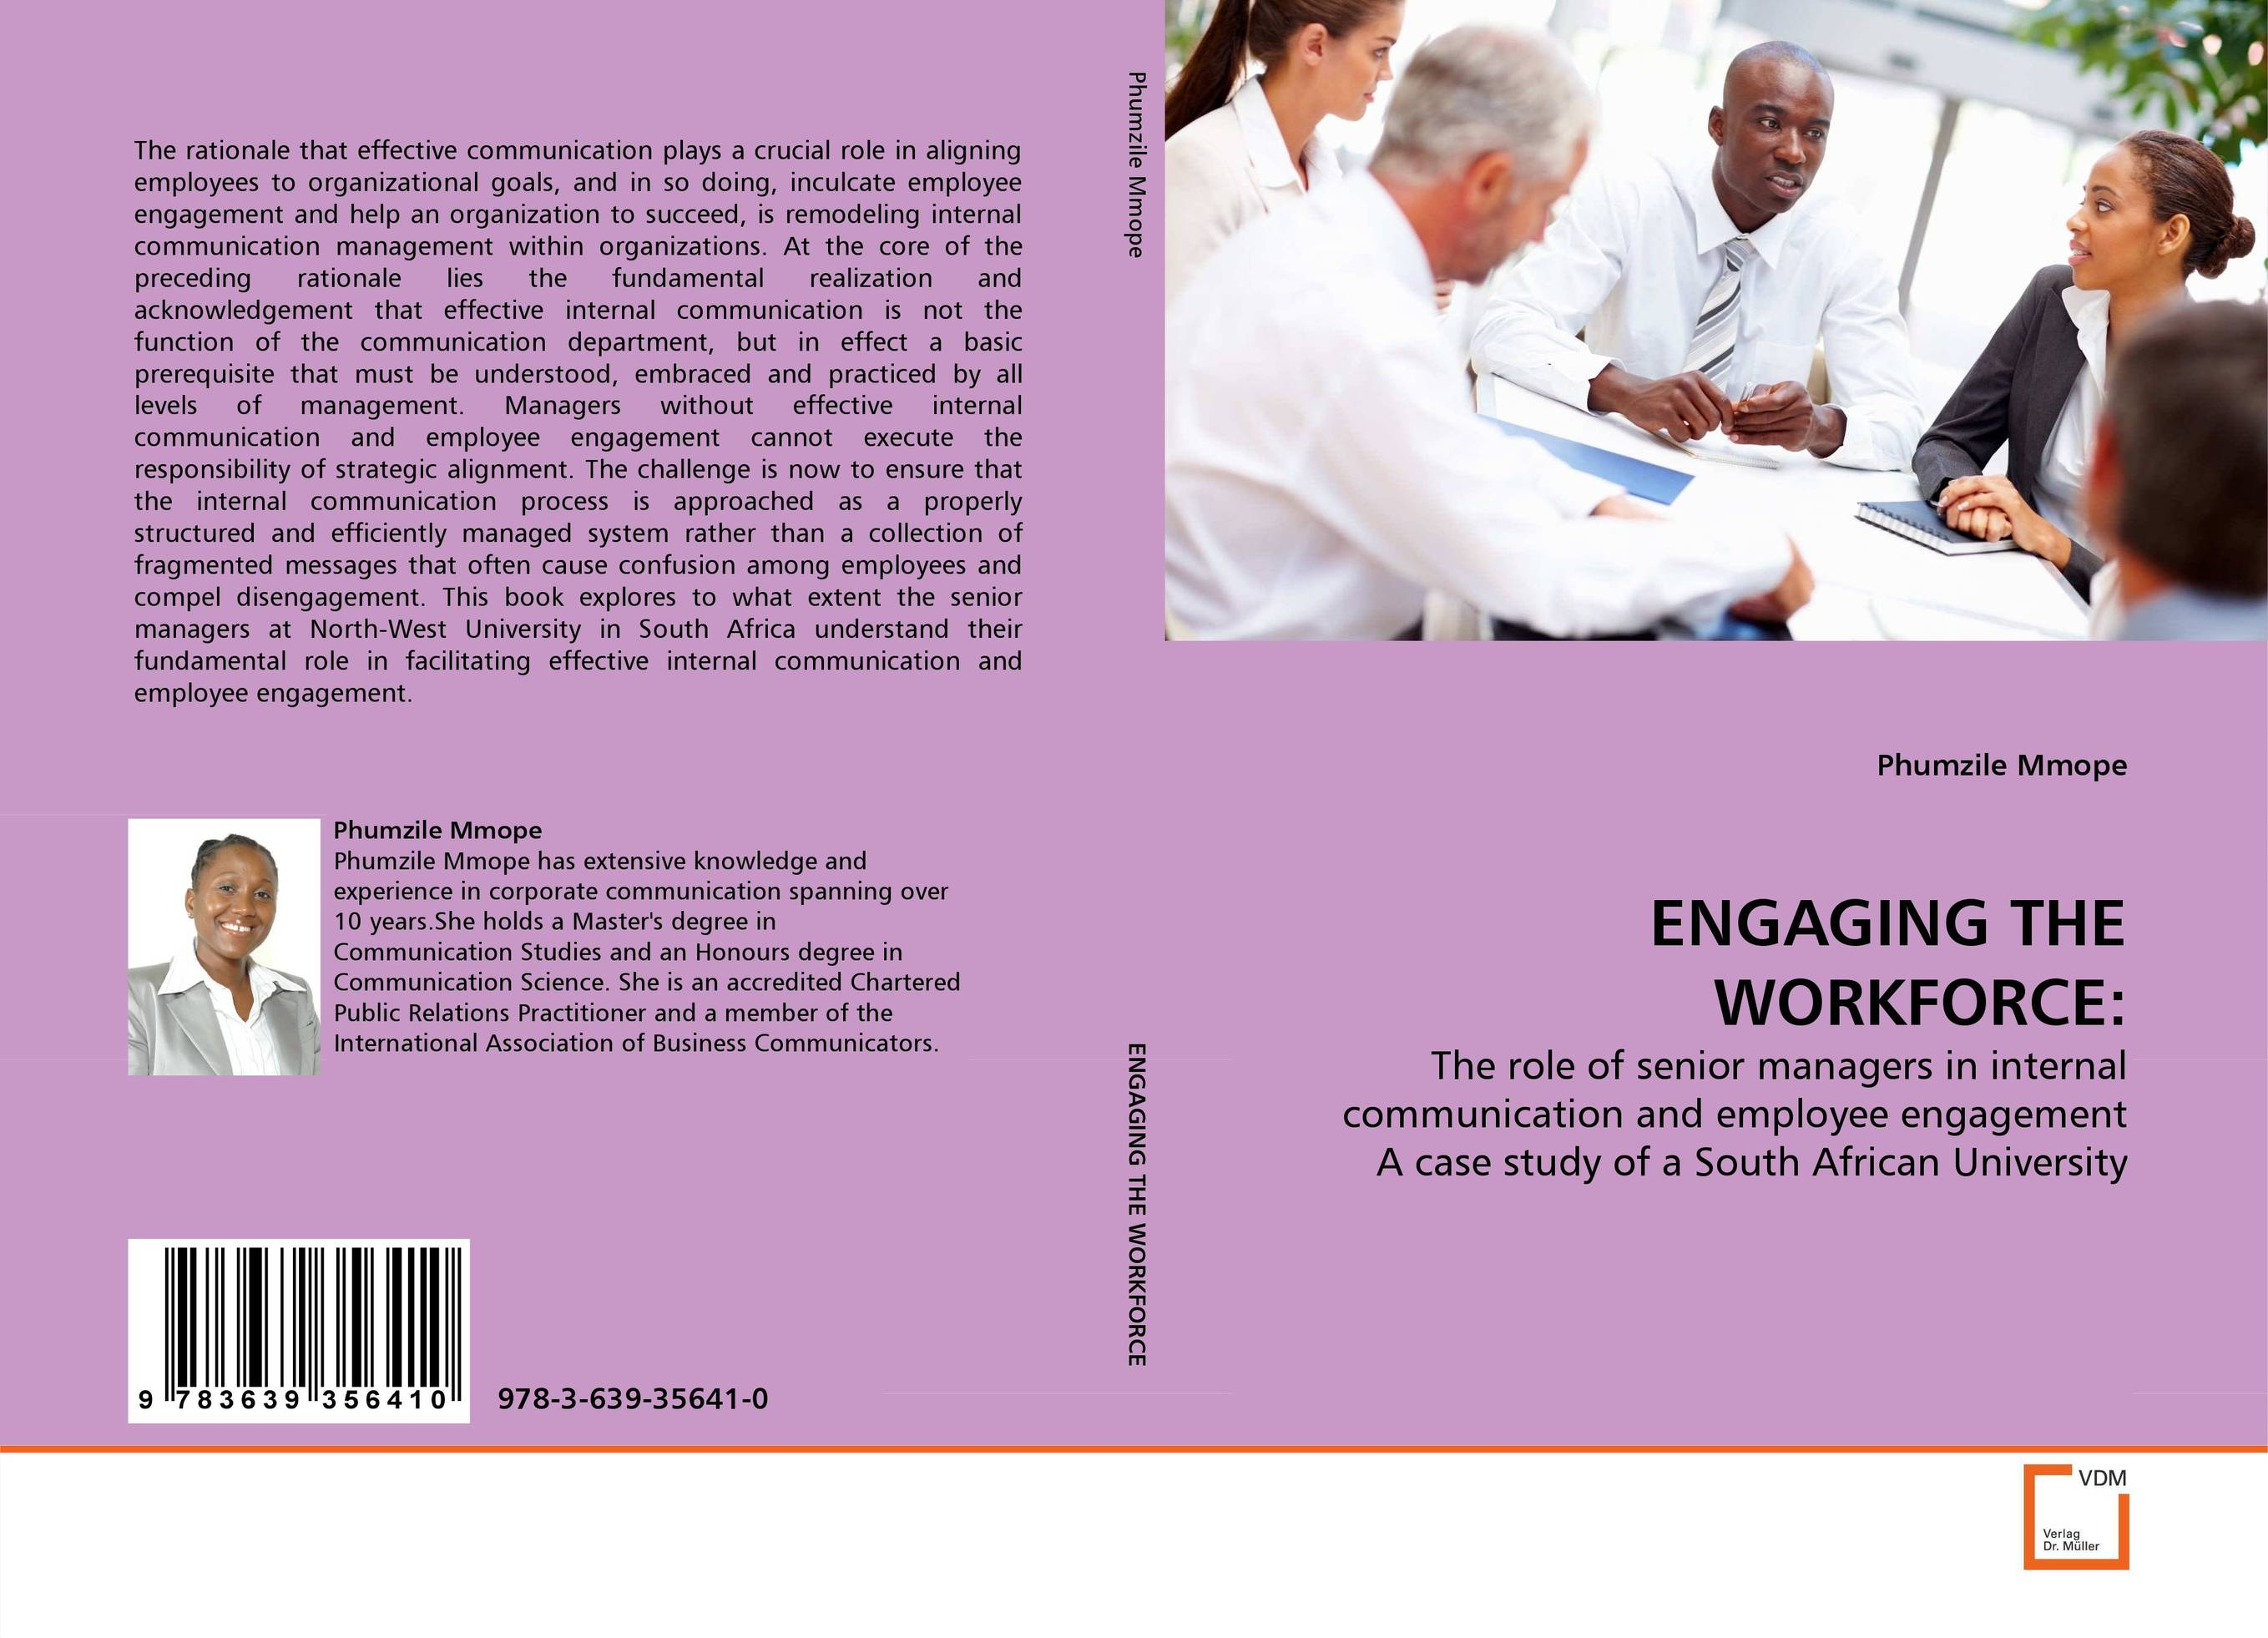 ENGAGING THE WORKFORCE: effective communication